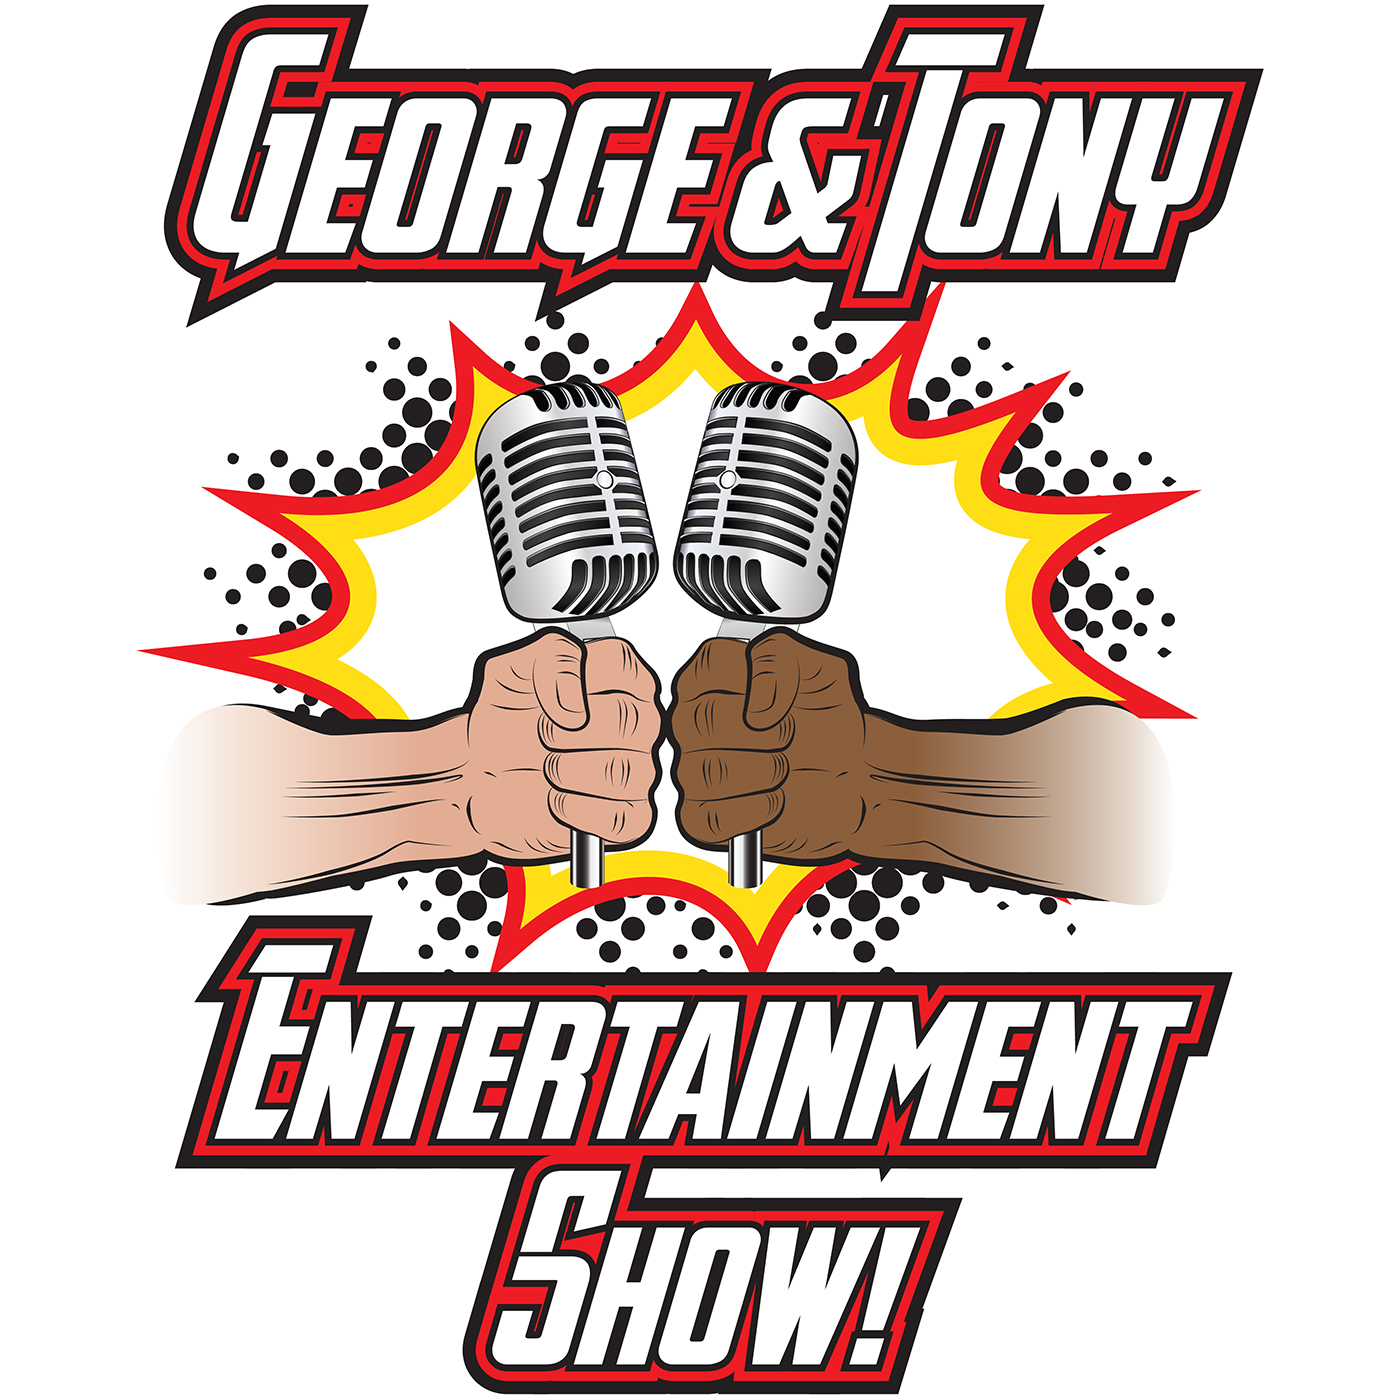 George and Tony Entertainment Show #145